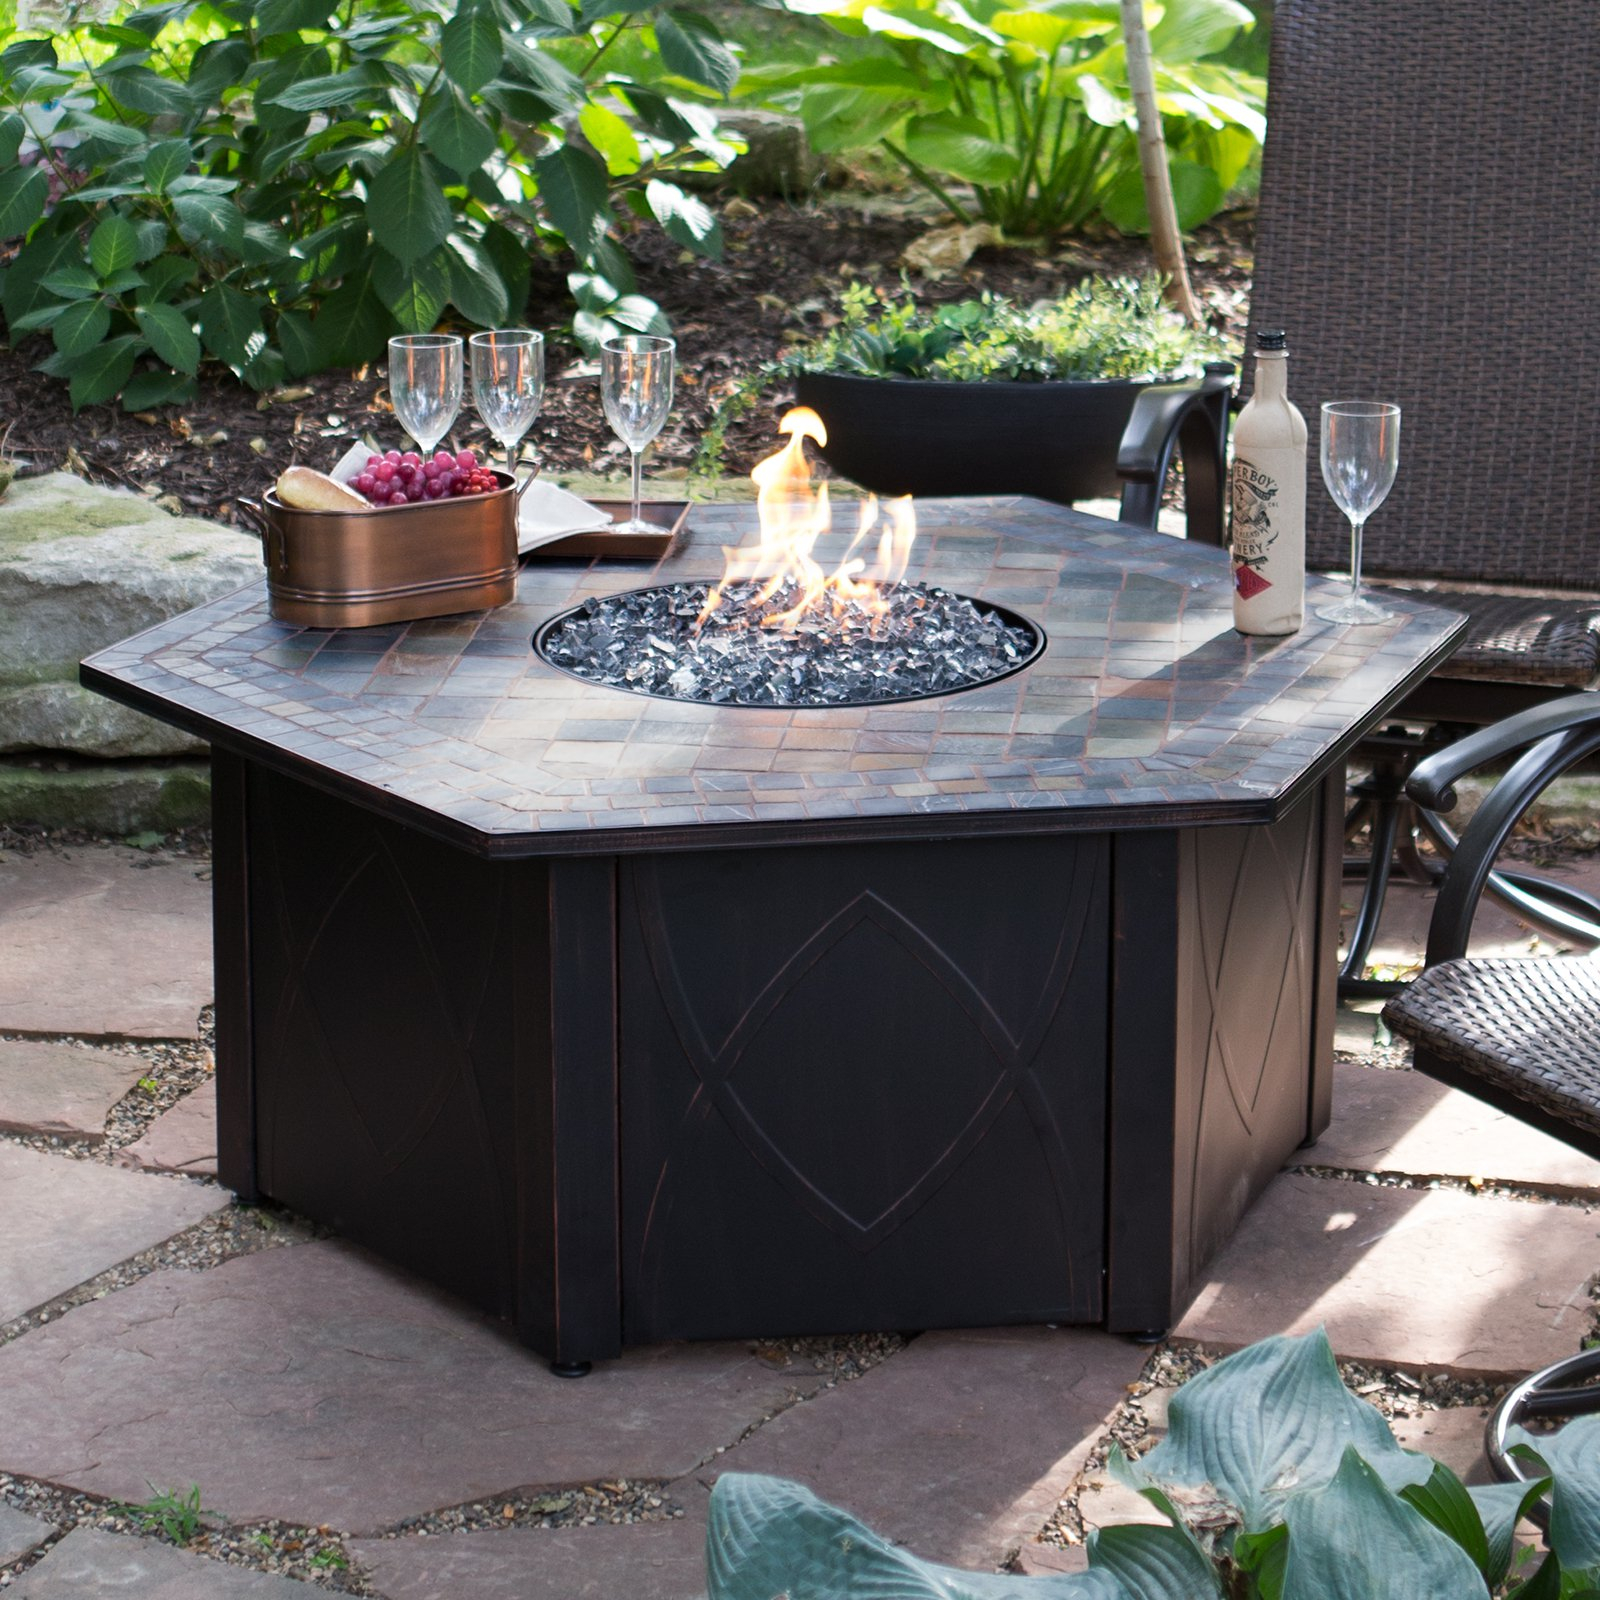 Endless Summer 55 In Decorative Slate Tile Lp Gas Outdoor Fire Pit intended for dimensions 1600 X 1600